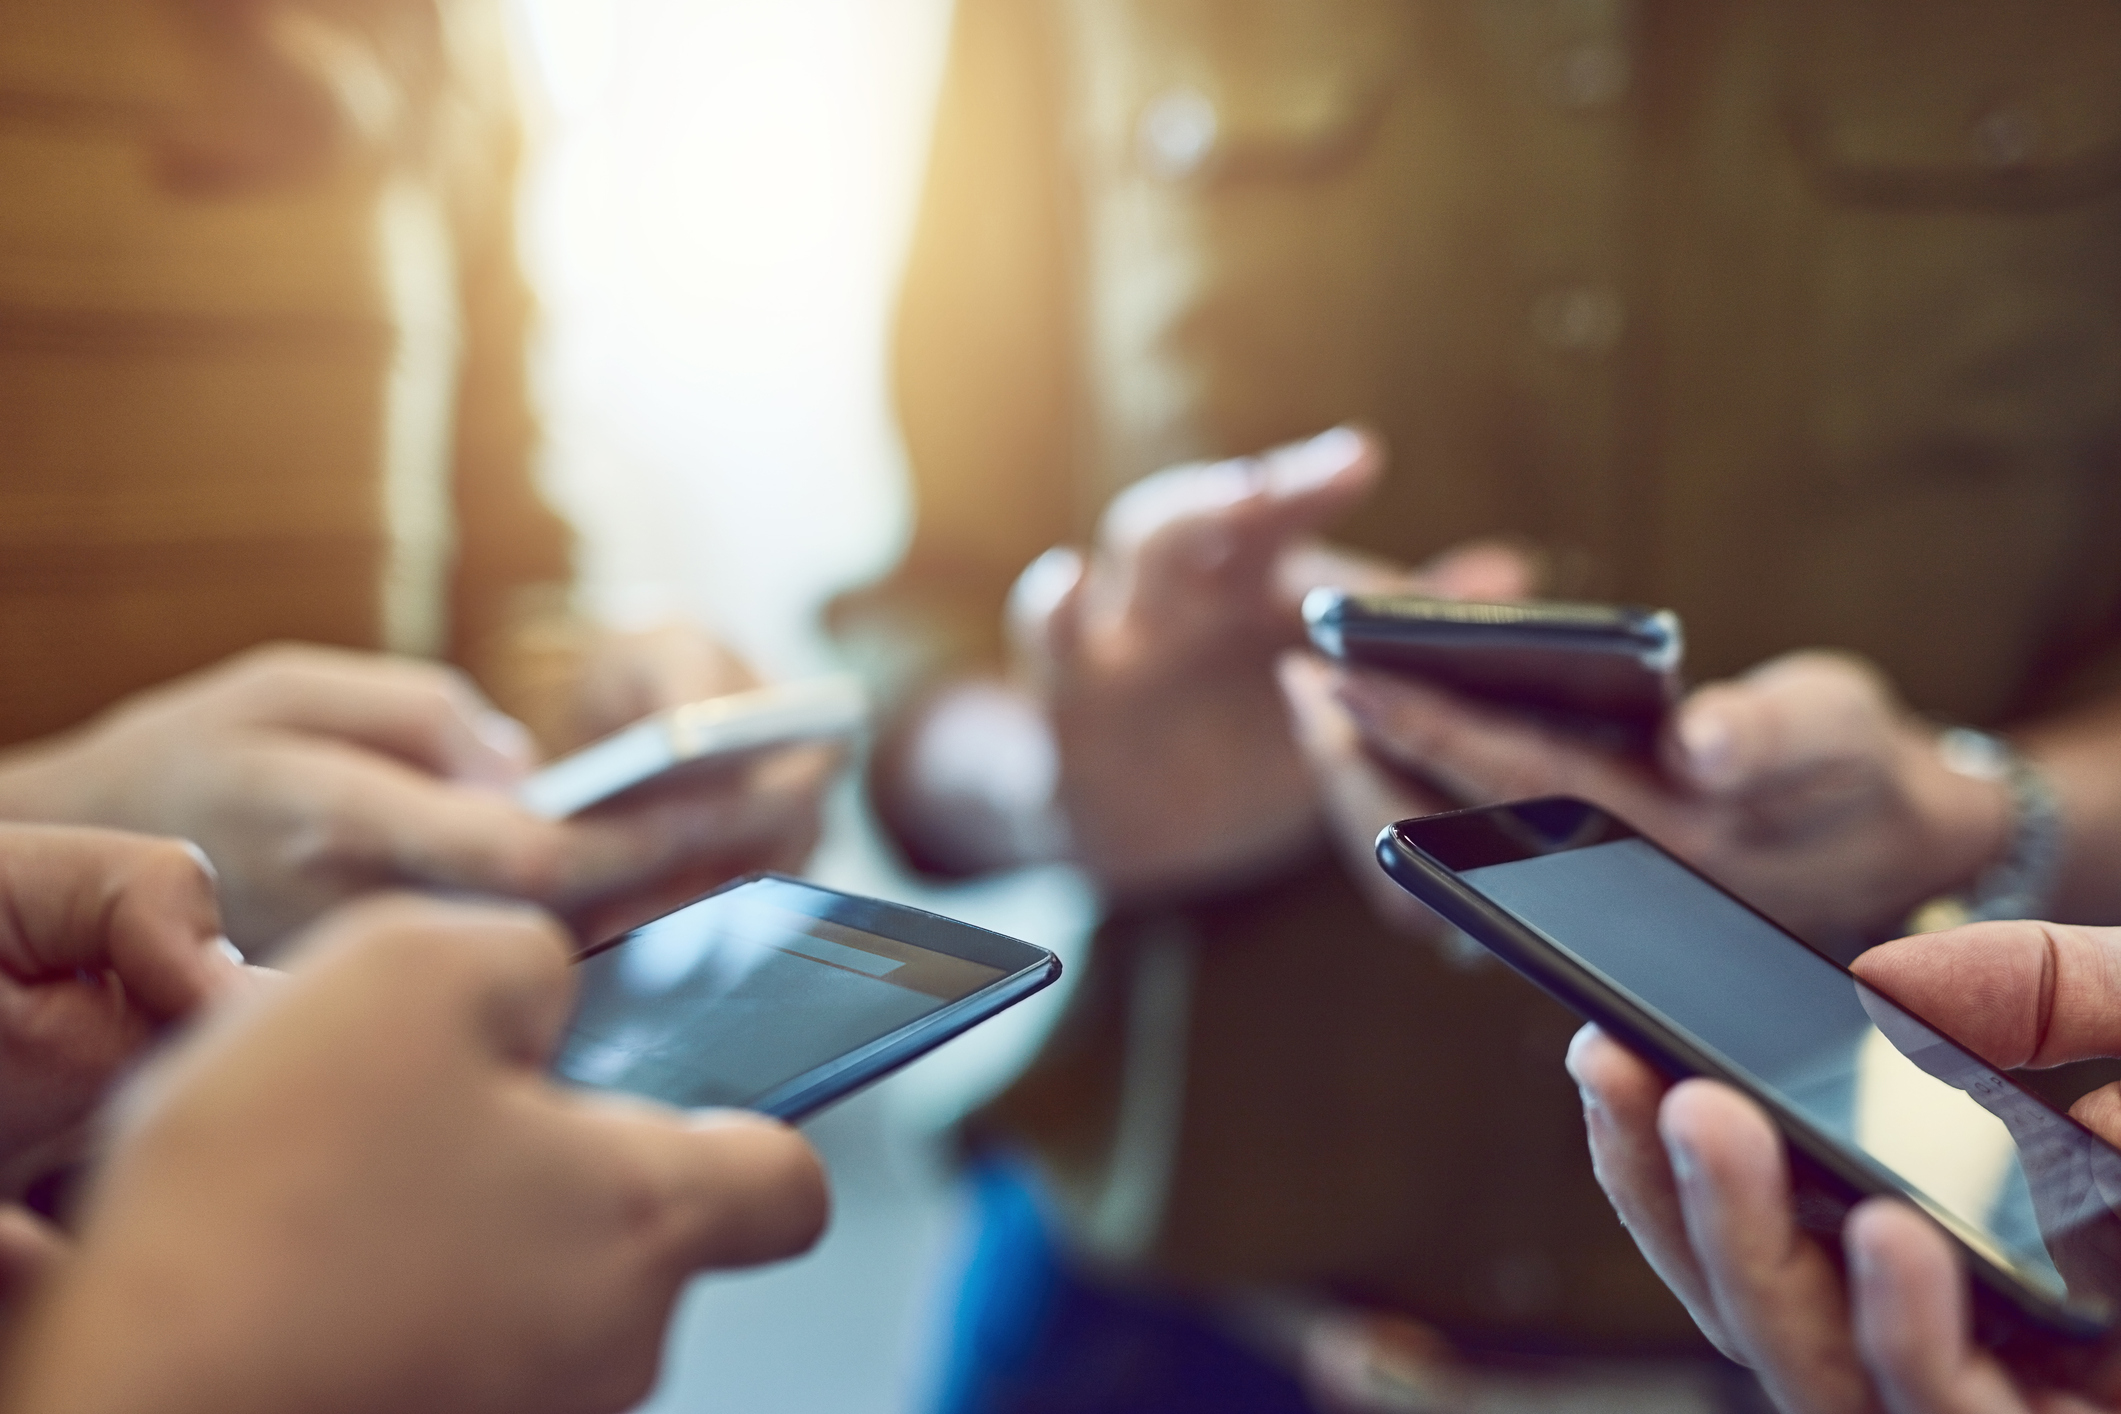 mobile phone coursework This practical course will help transform your professional life after my course at mobile technology institute i can earn well for myself and my family by being a smartphone repair expert.